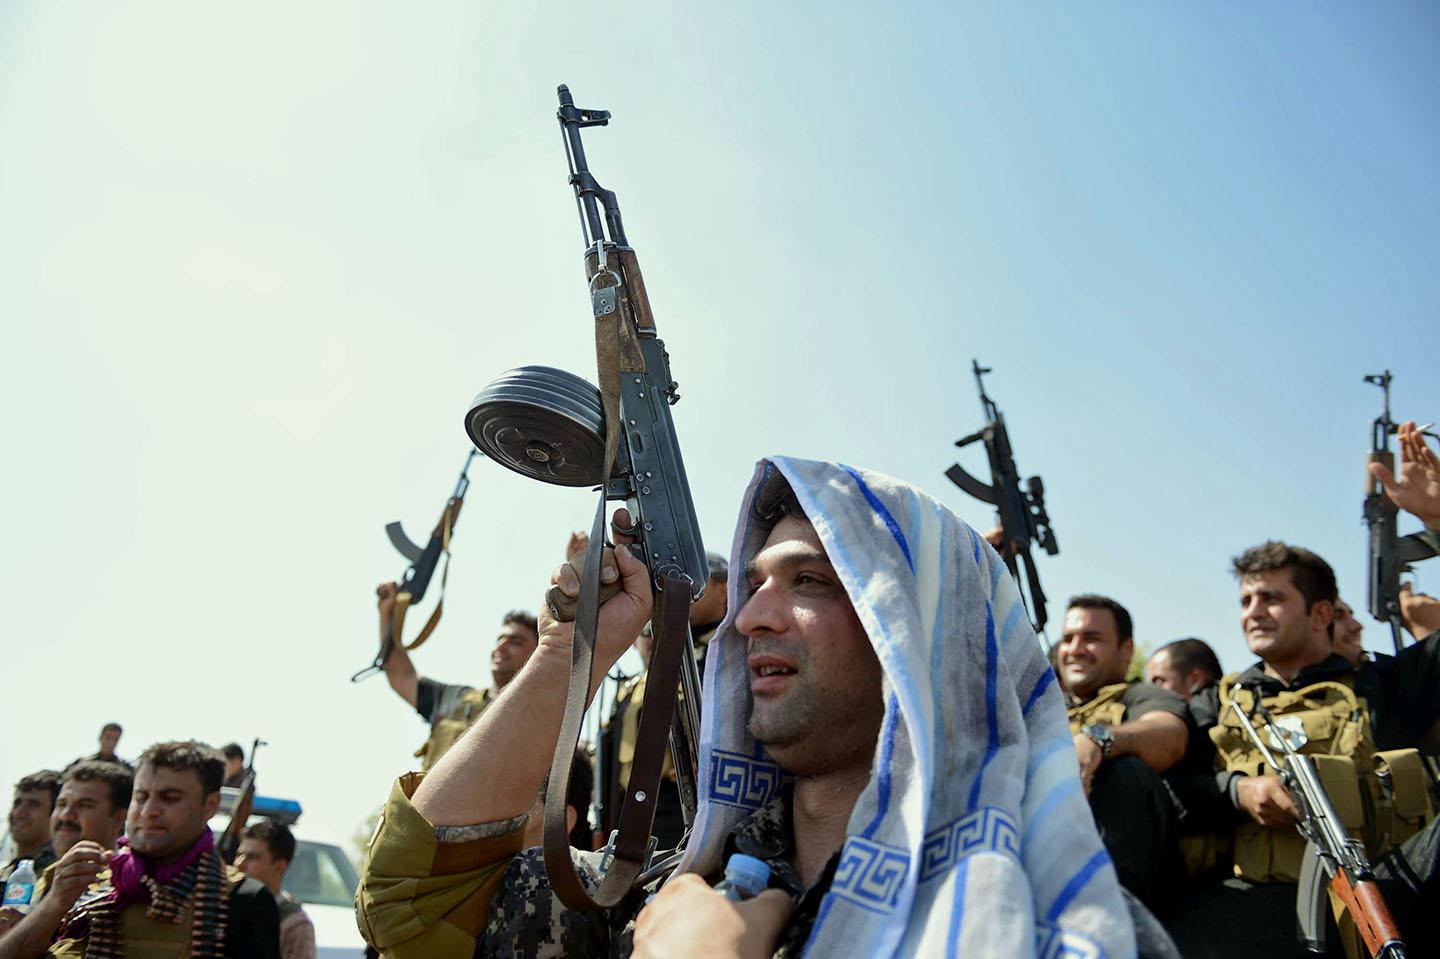 A militant Islamist fighter takes part in a military parade along the streets of Syria's northern Raqqa province.